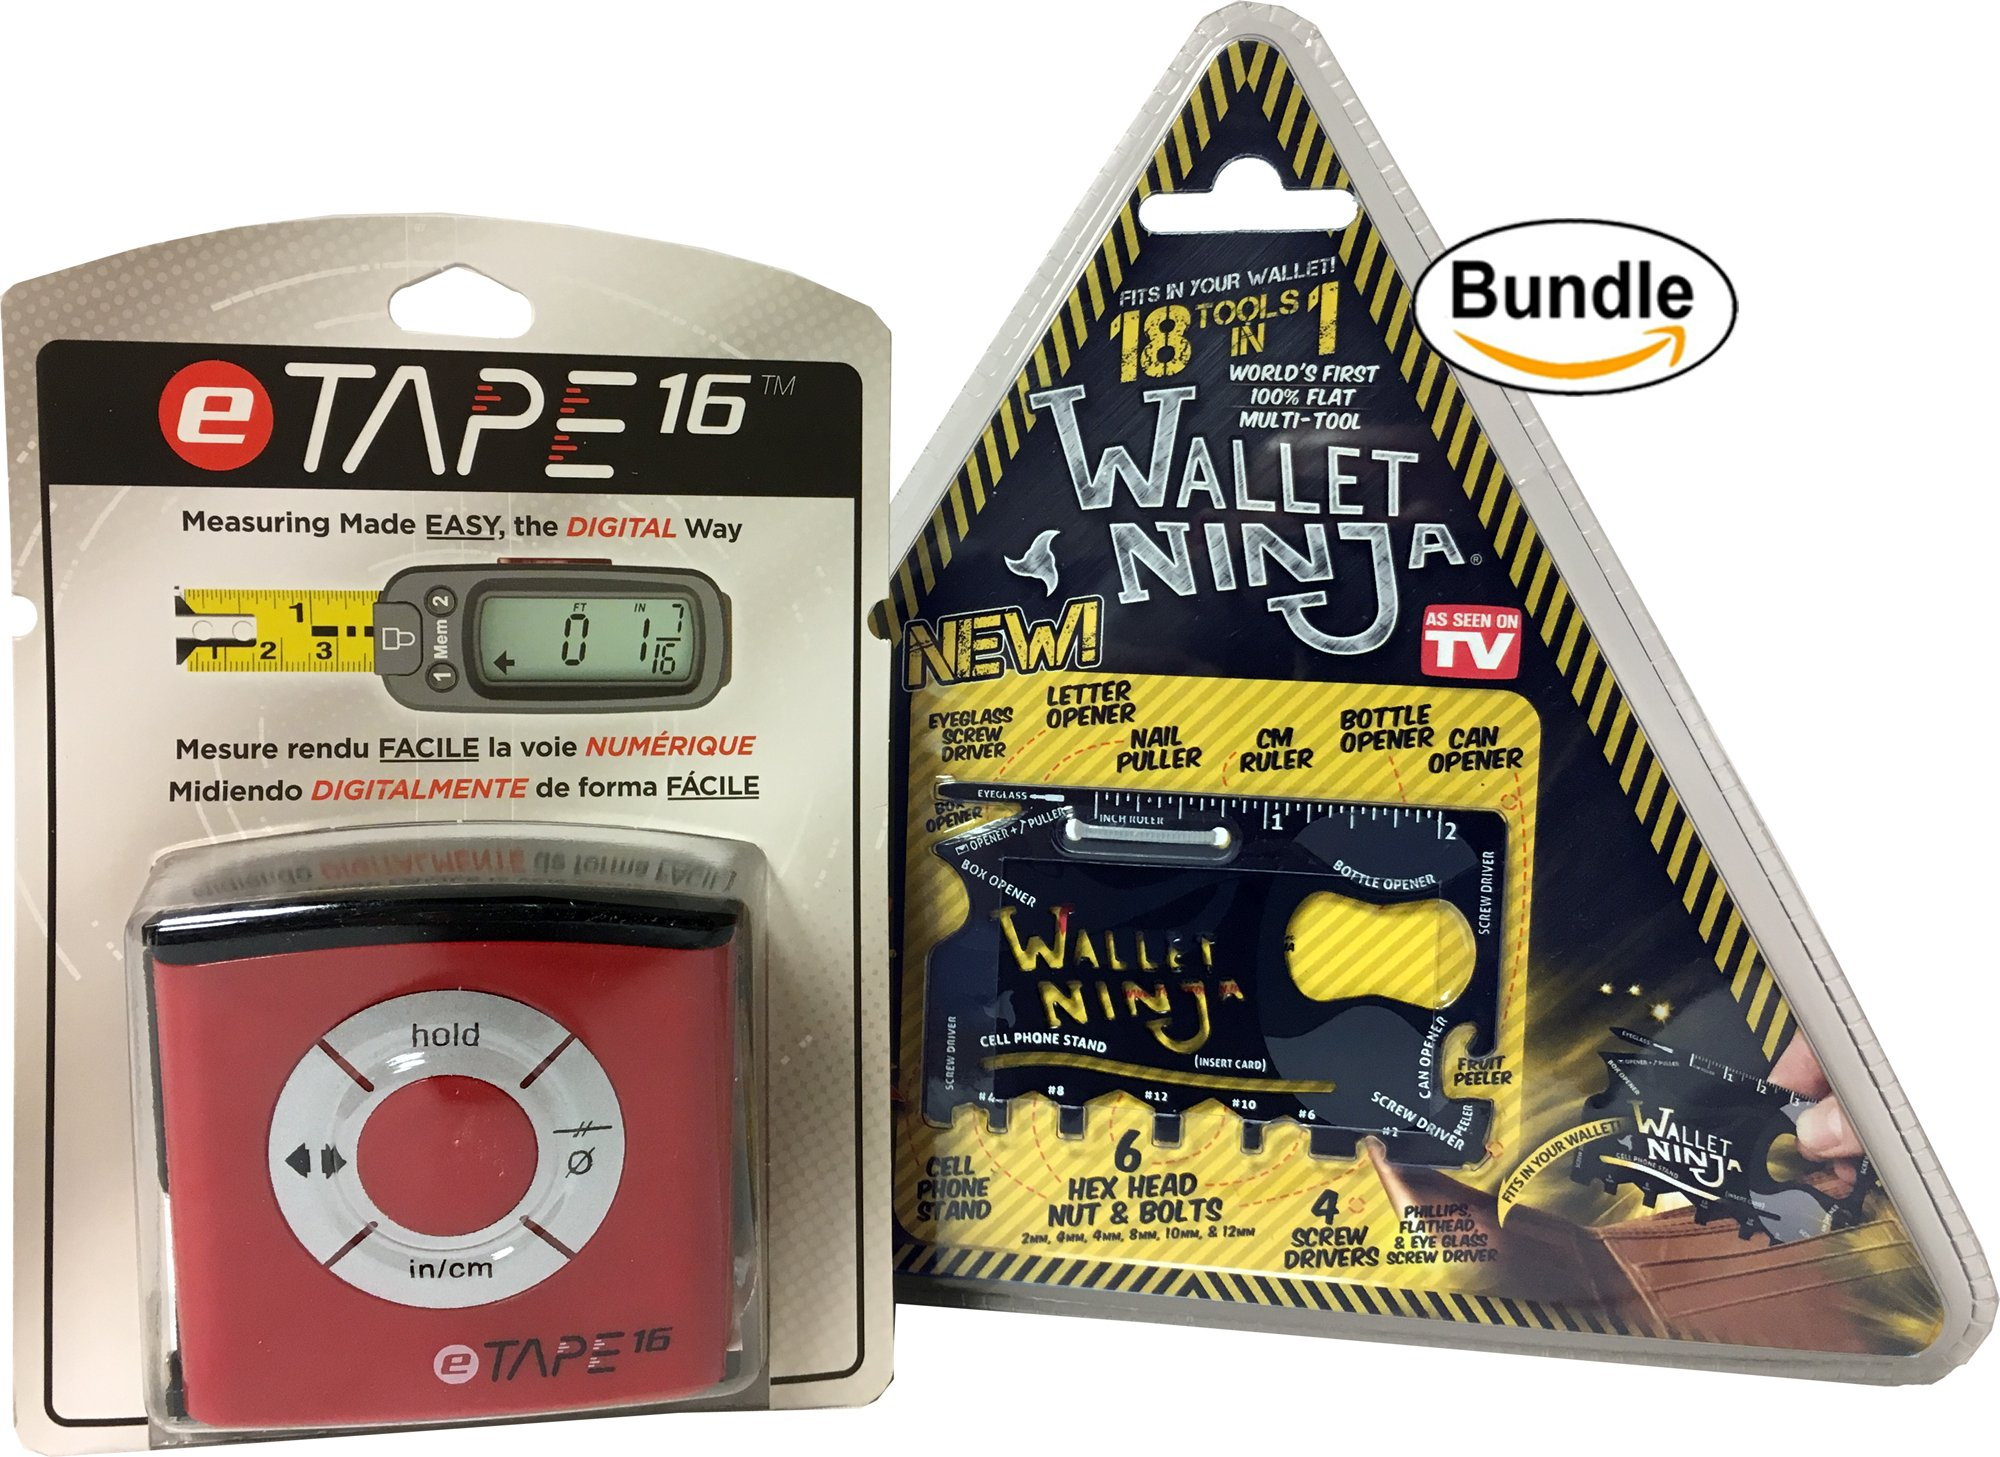 eTape16 ET16.75-DB-RP Digital Tape Measure, 16', Red, Inch and Metric & Authentic Wallet Ninja 18 in 1 Multi-purpose Credit Card Size Pocket Tool (Bundle)